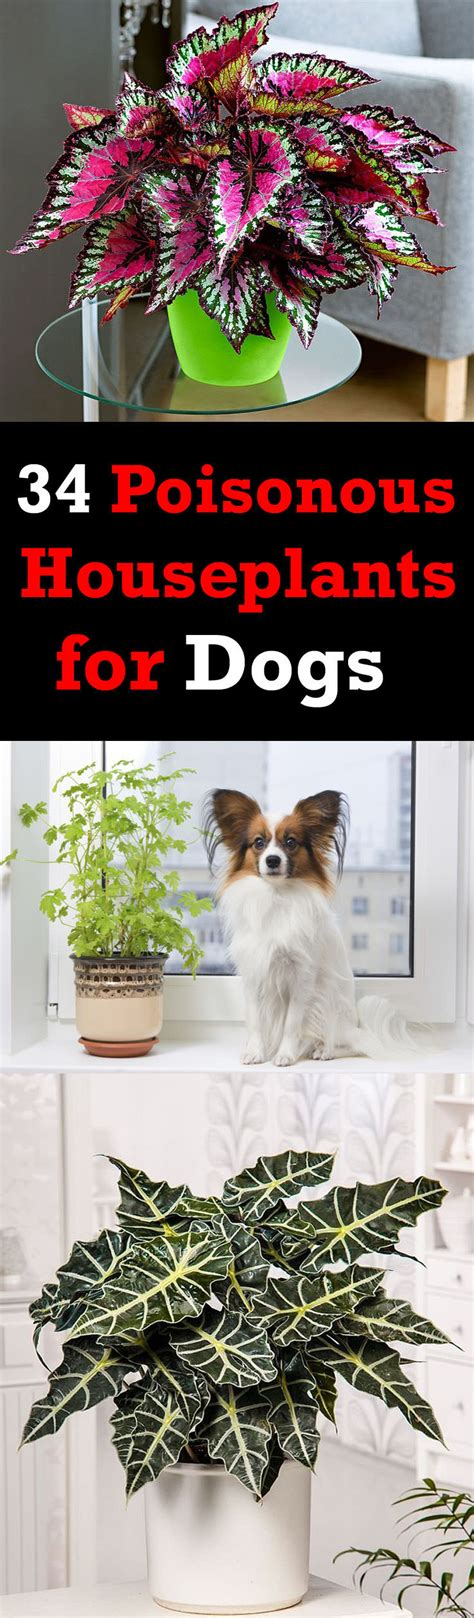 safe house plants for dogs tropical house plants poisonous to cats